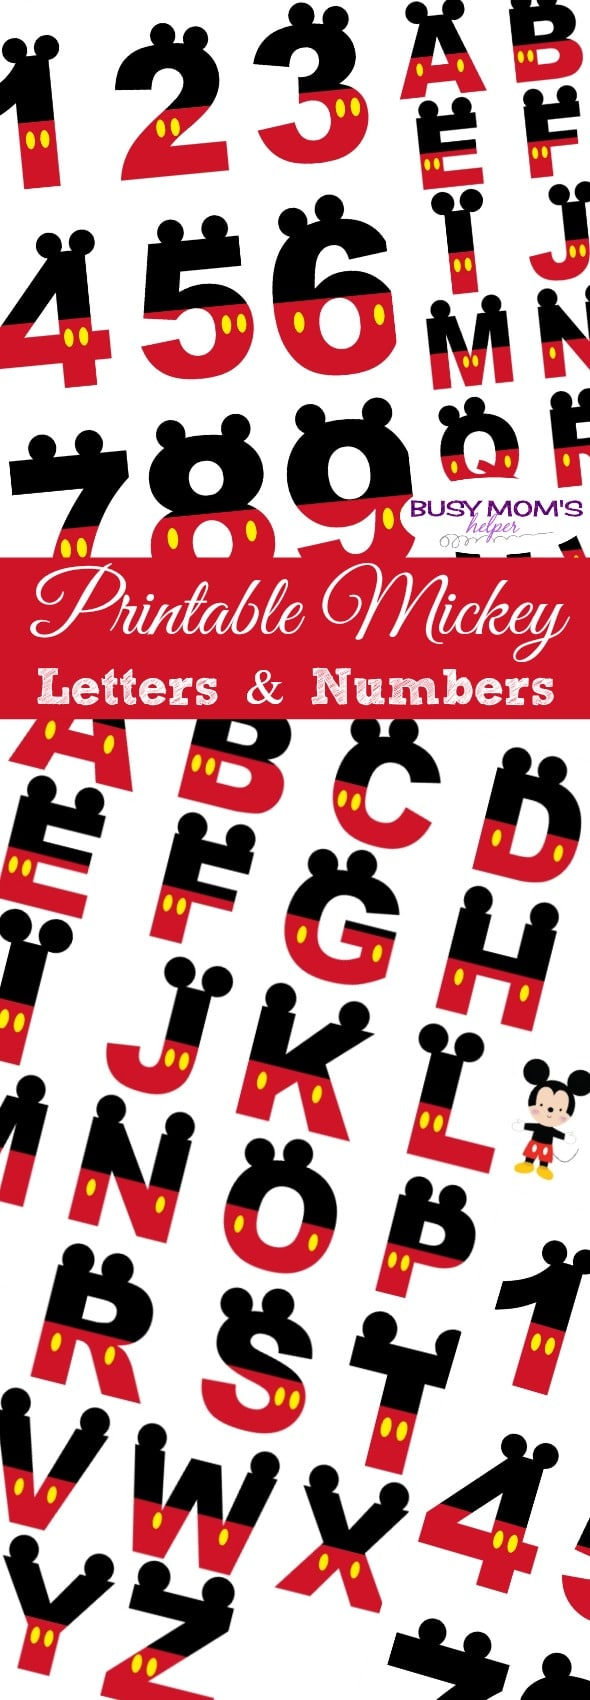 picture regarding Mickey Printable known as Printable Mickey Figures Letters - Hectic Mothers Helper